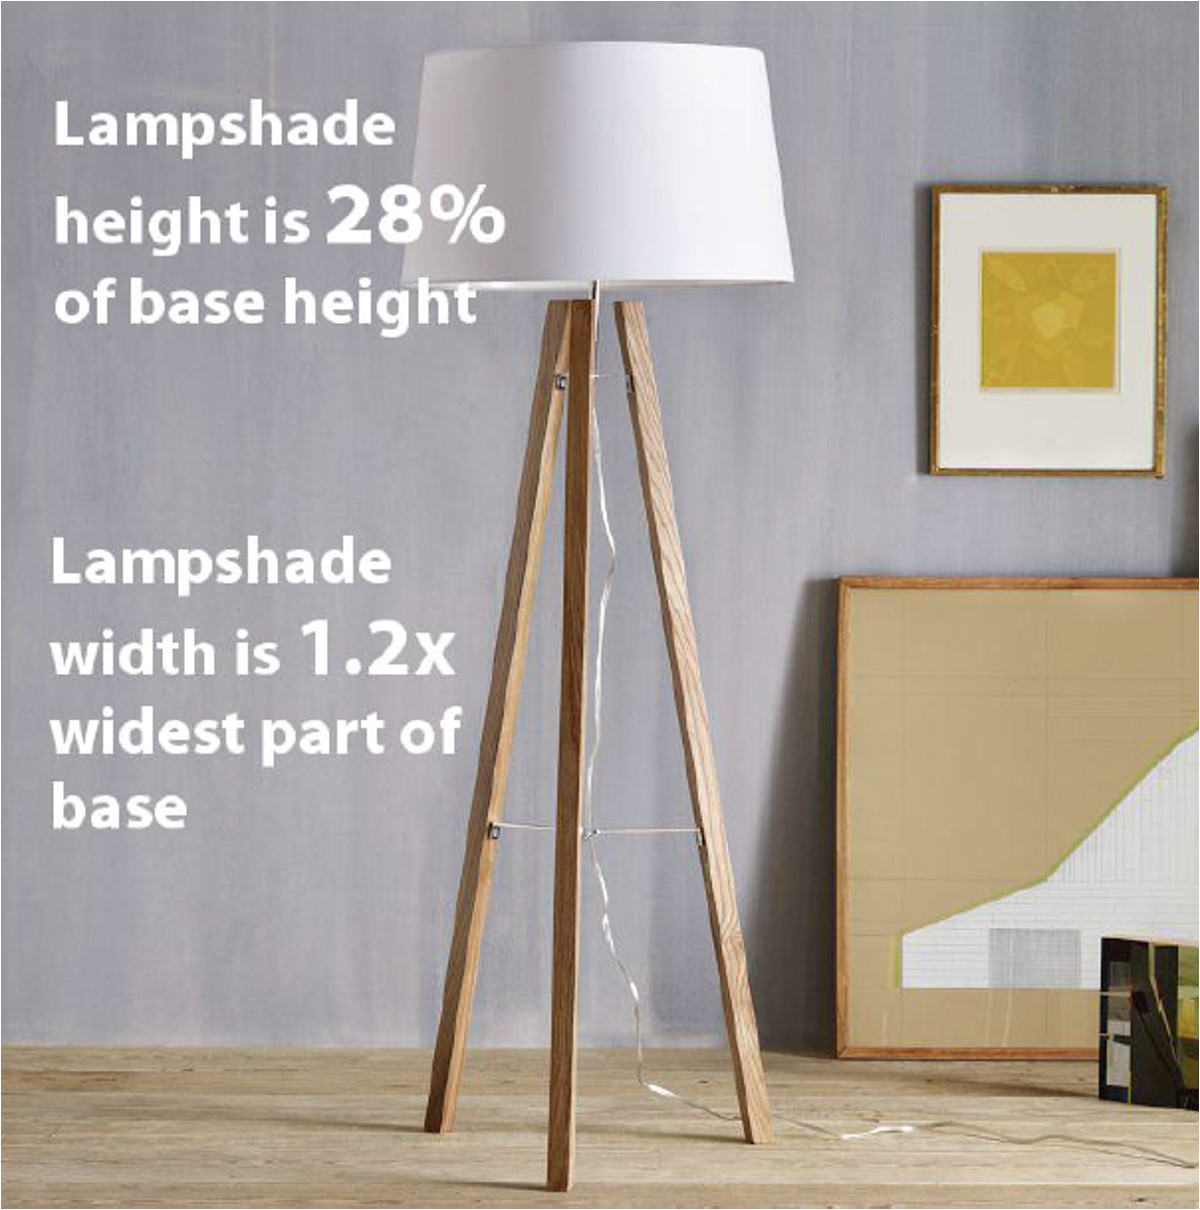 here are some examples of lampshades that don t follow the lampshade sizing guidelines and look great anyway